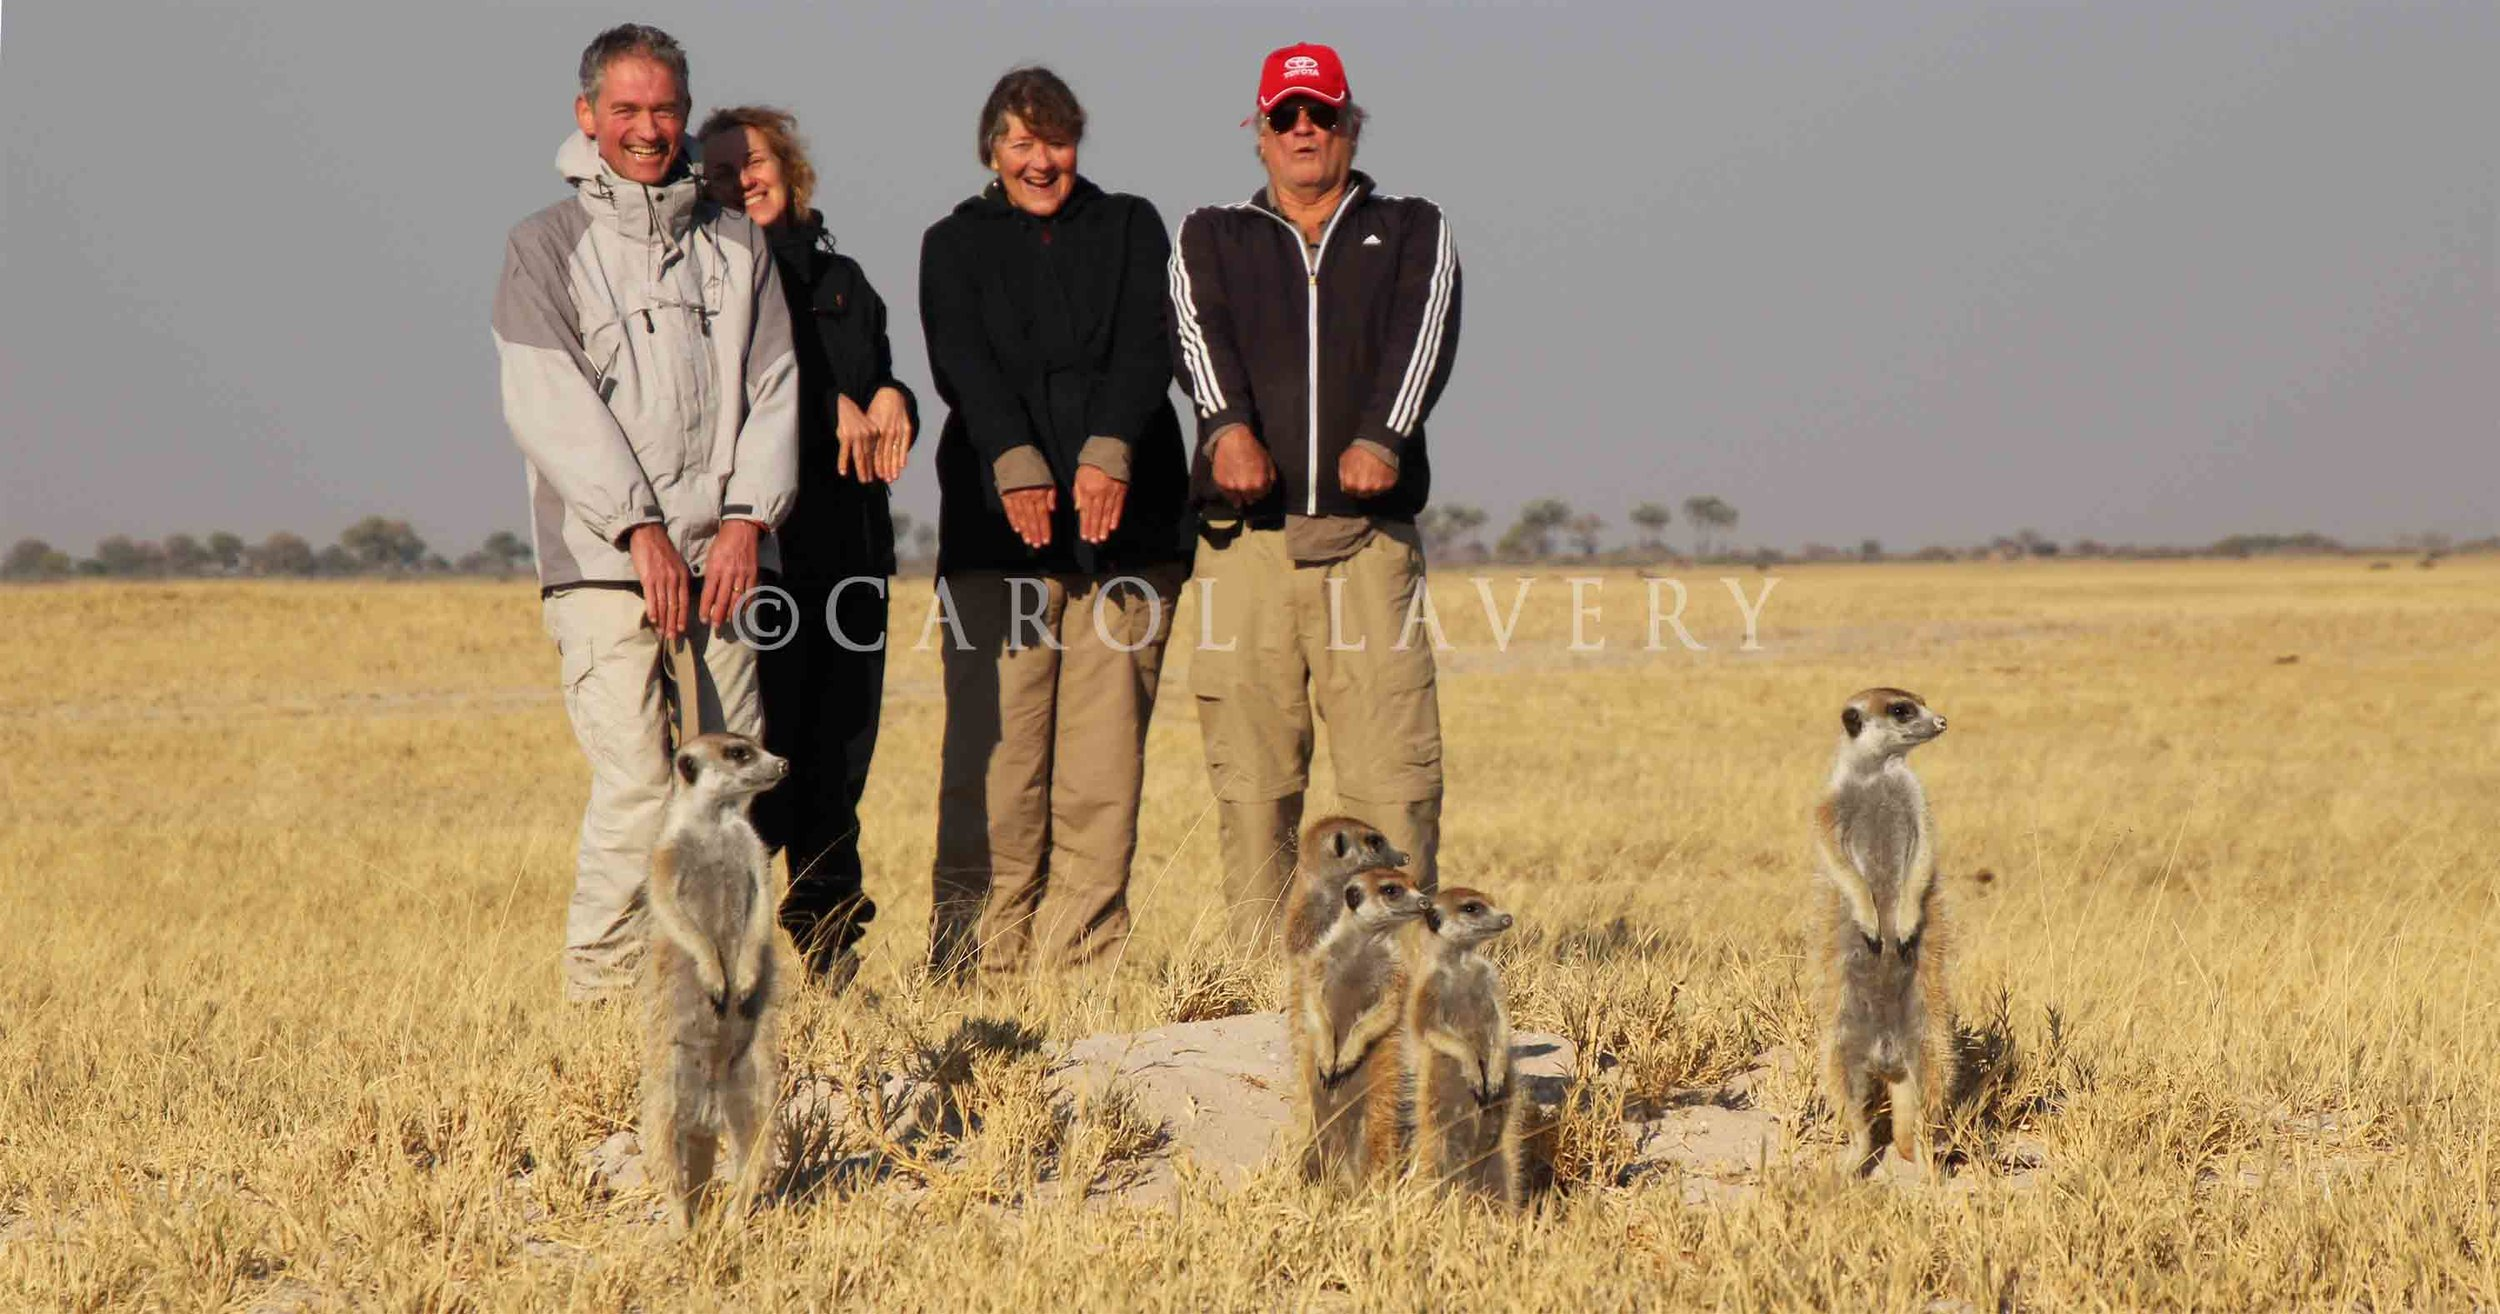 Our Group at Meercats 2.jpg